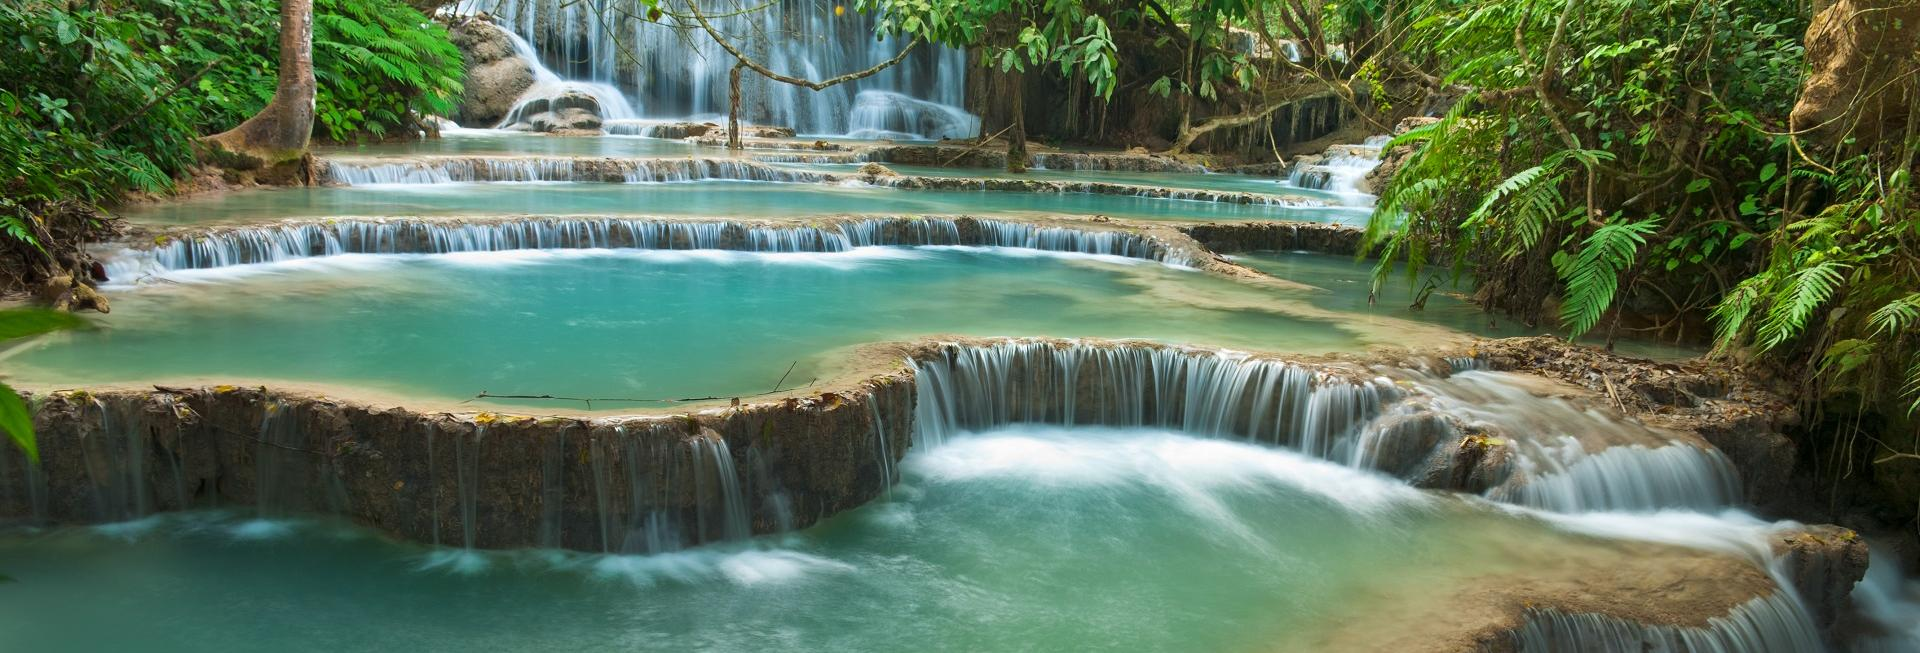 Waterfalls, Laos